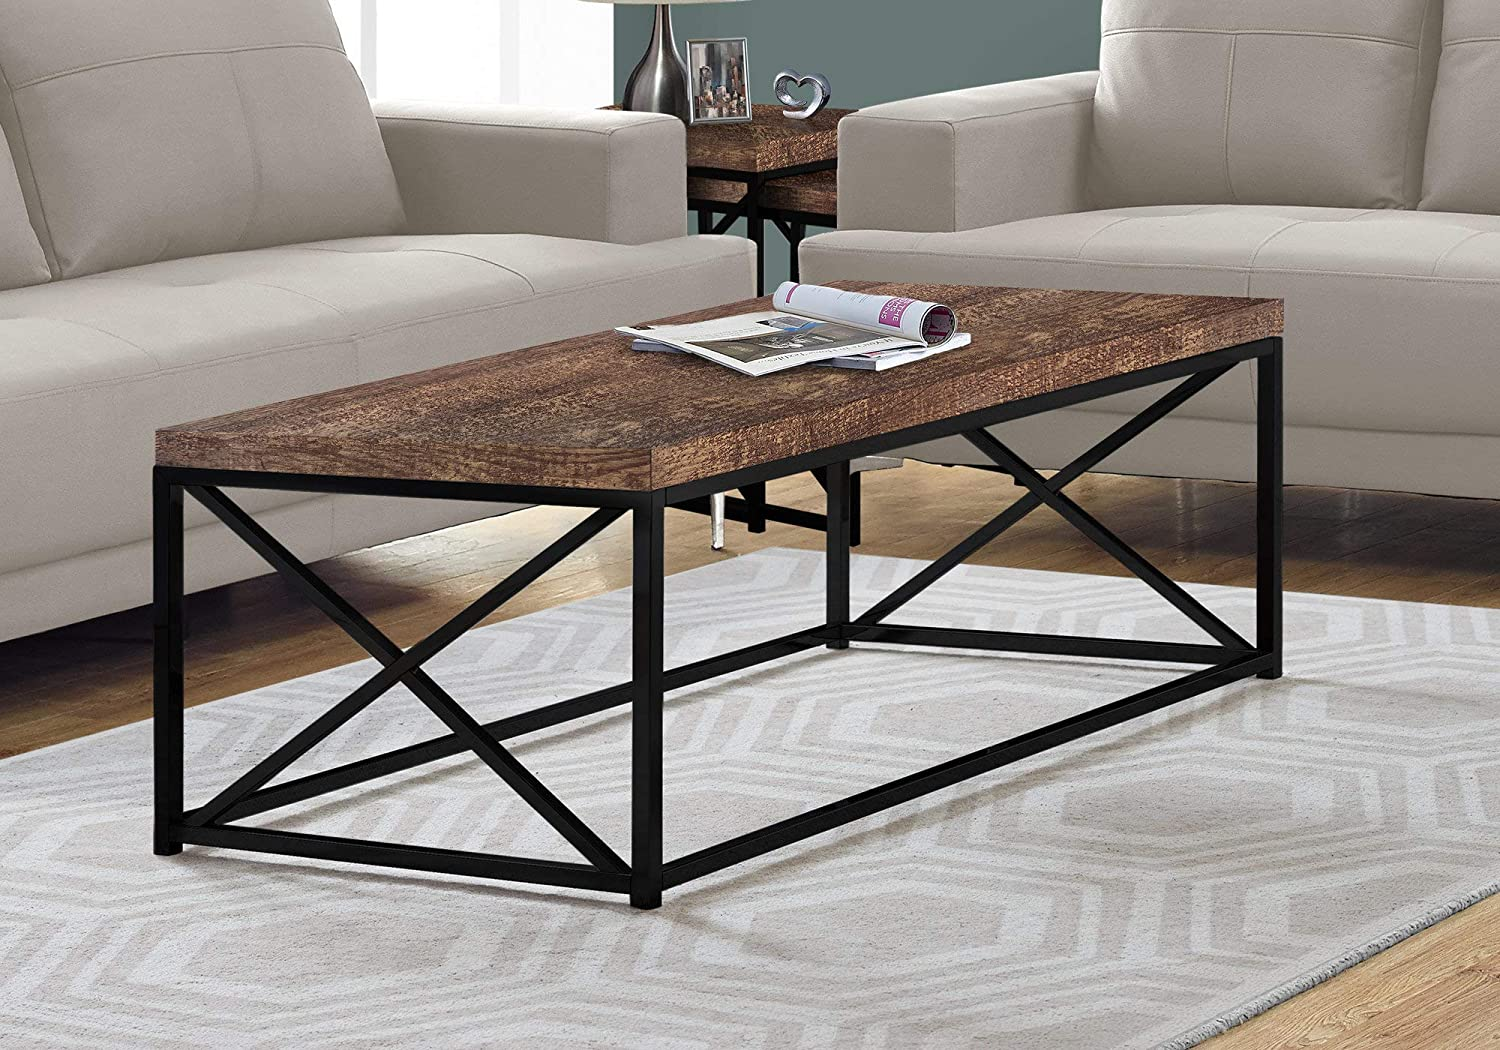 Criss Cross Coffee Table.Monarch Specialties Coffee Table Modern Cocktail Table With Metal Base 44 L Brown